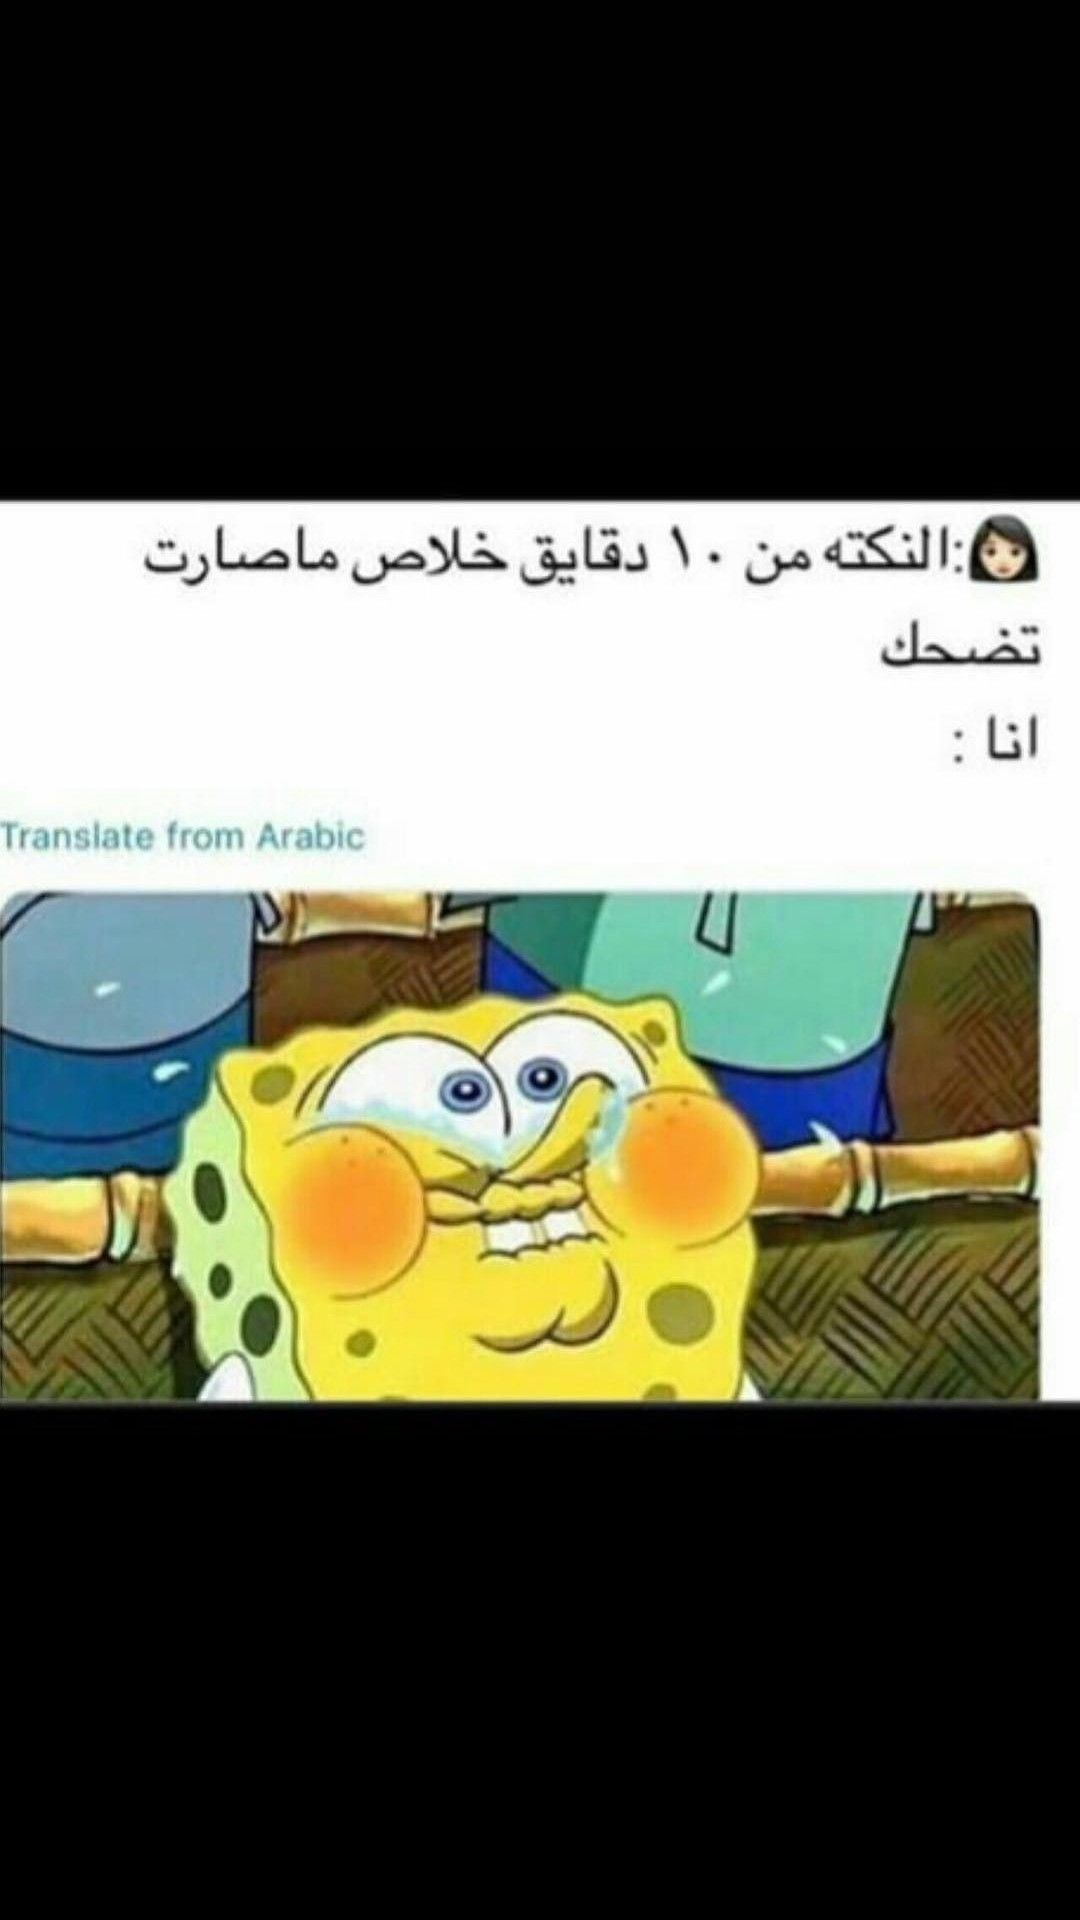 Pin By Sha West101 On استهبال Funny School Memes Funny Jok Funny Picture Jokes